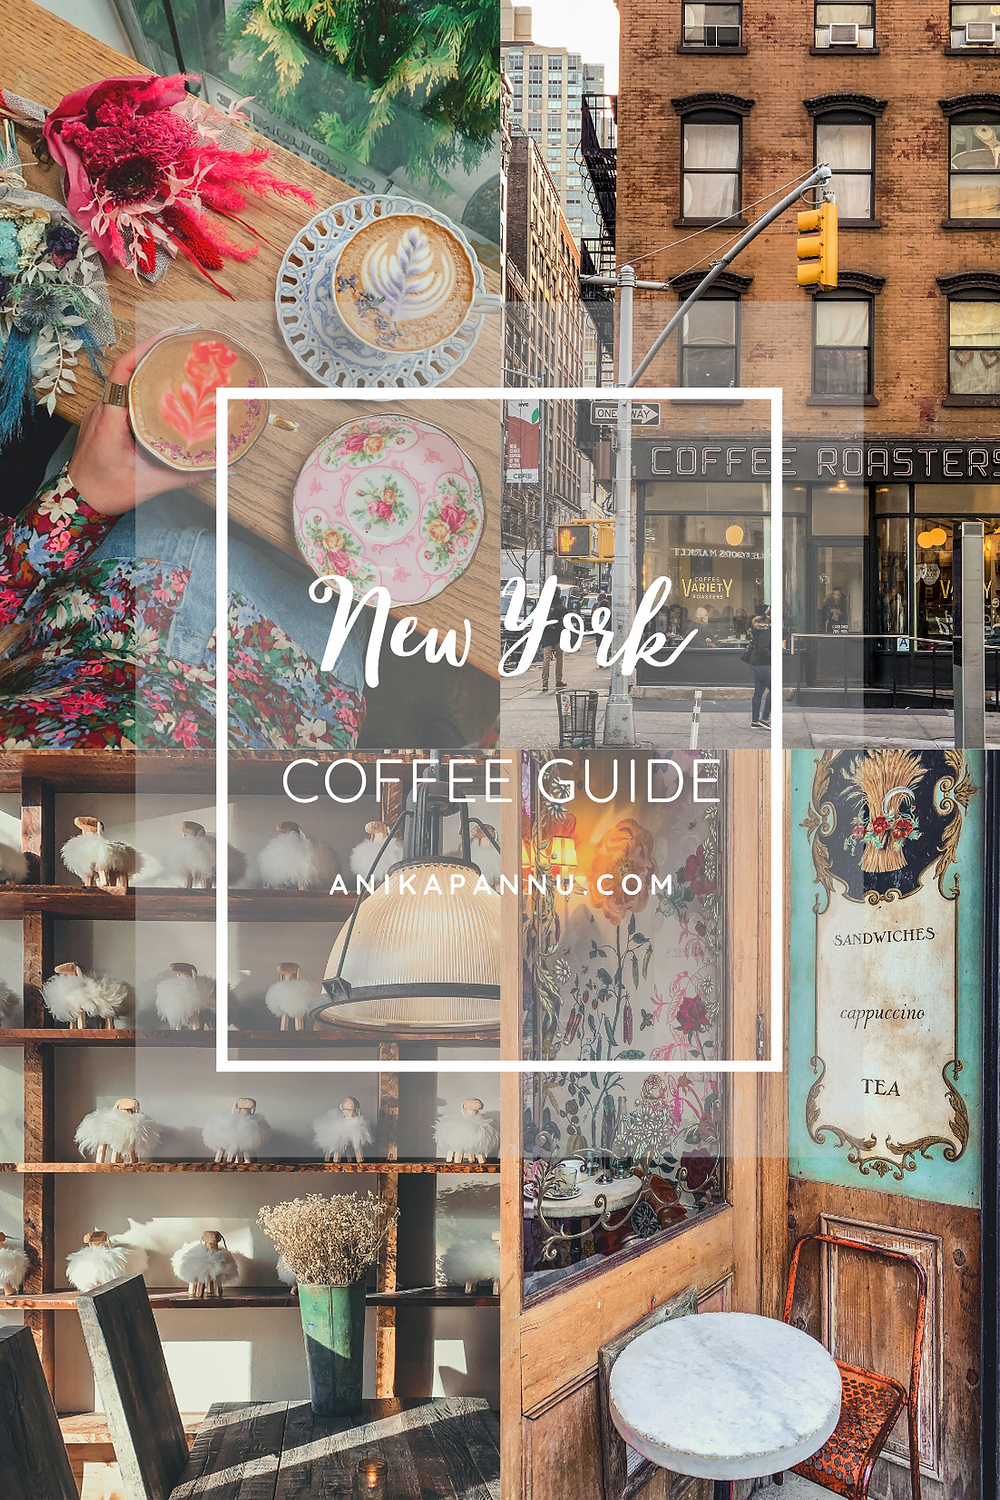 new york coffee shops, best coffee in new york, instagrammable cafes in new york, best coffee new york, remi coffee ew york, felix roasting co new york, saltwater new york, birch coffee new york, supermoon bakehouse new york, best cafes in new york,